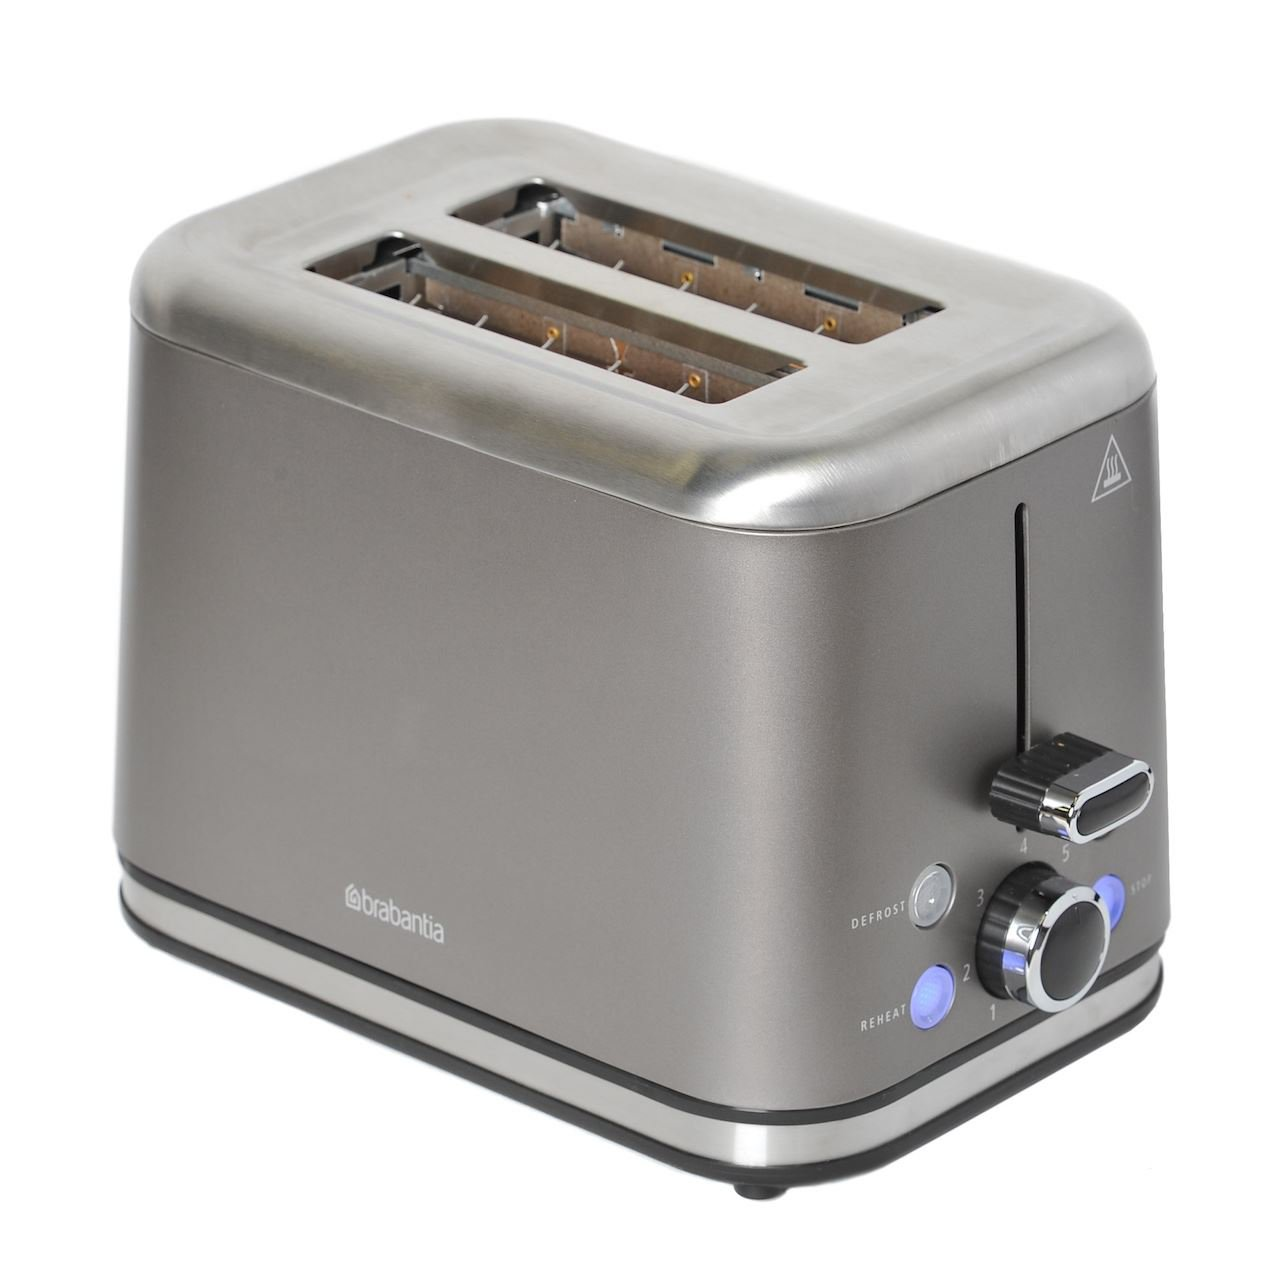 Brabantia 2 Slice Toaster In Brushed Stainless Steel